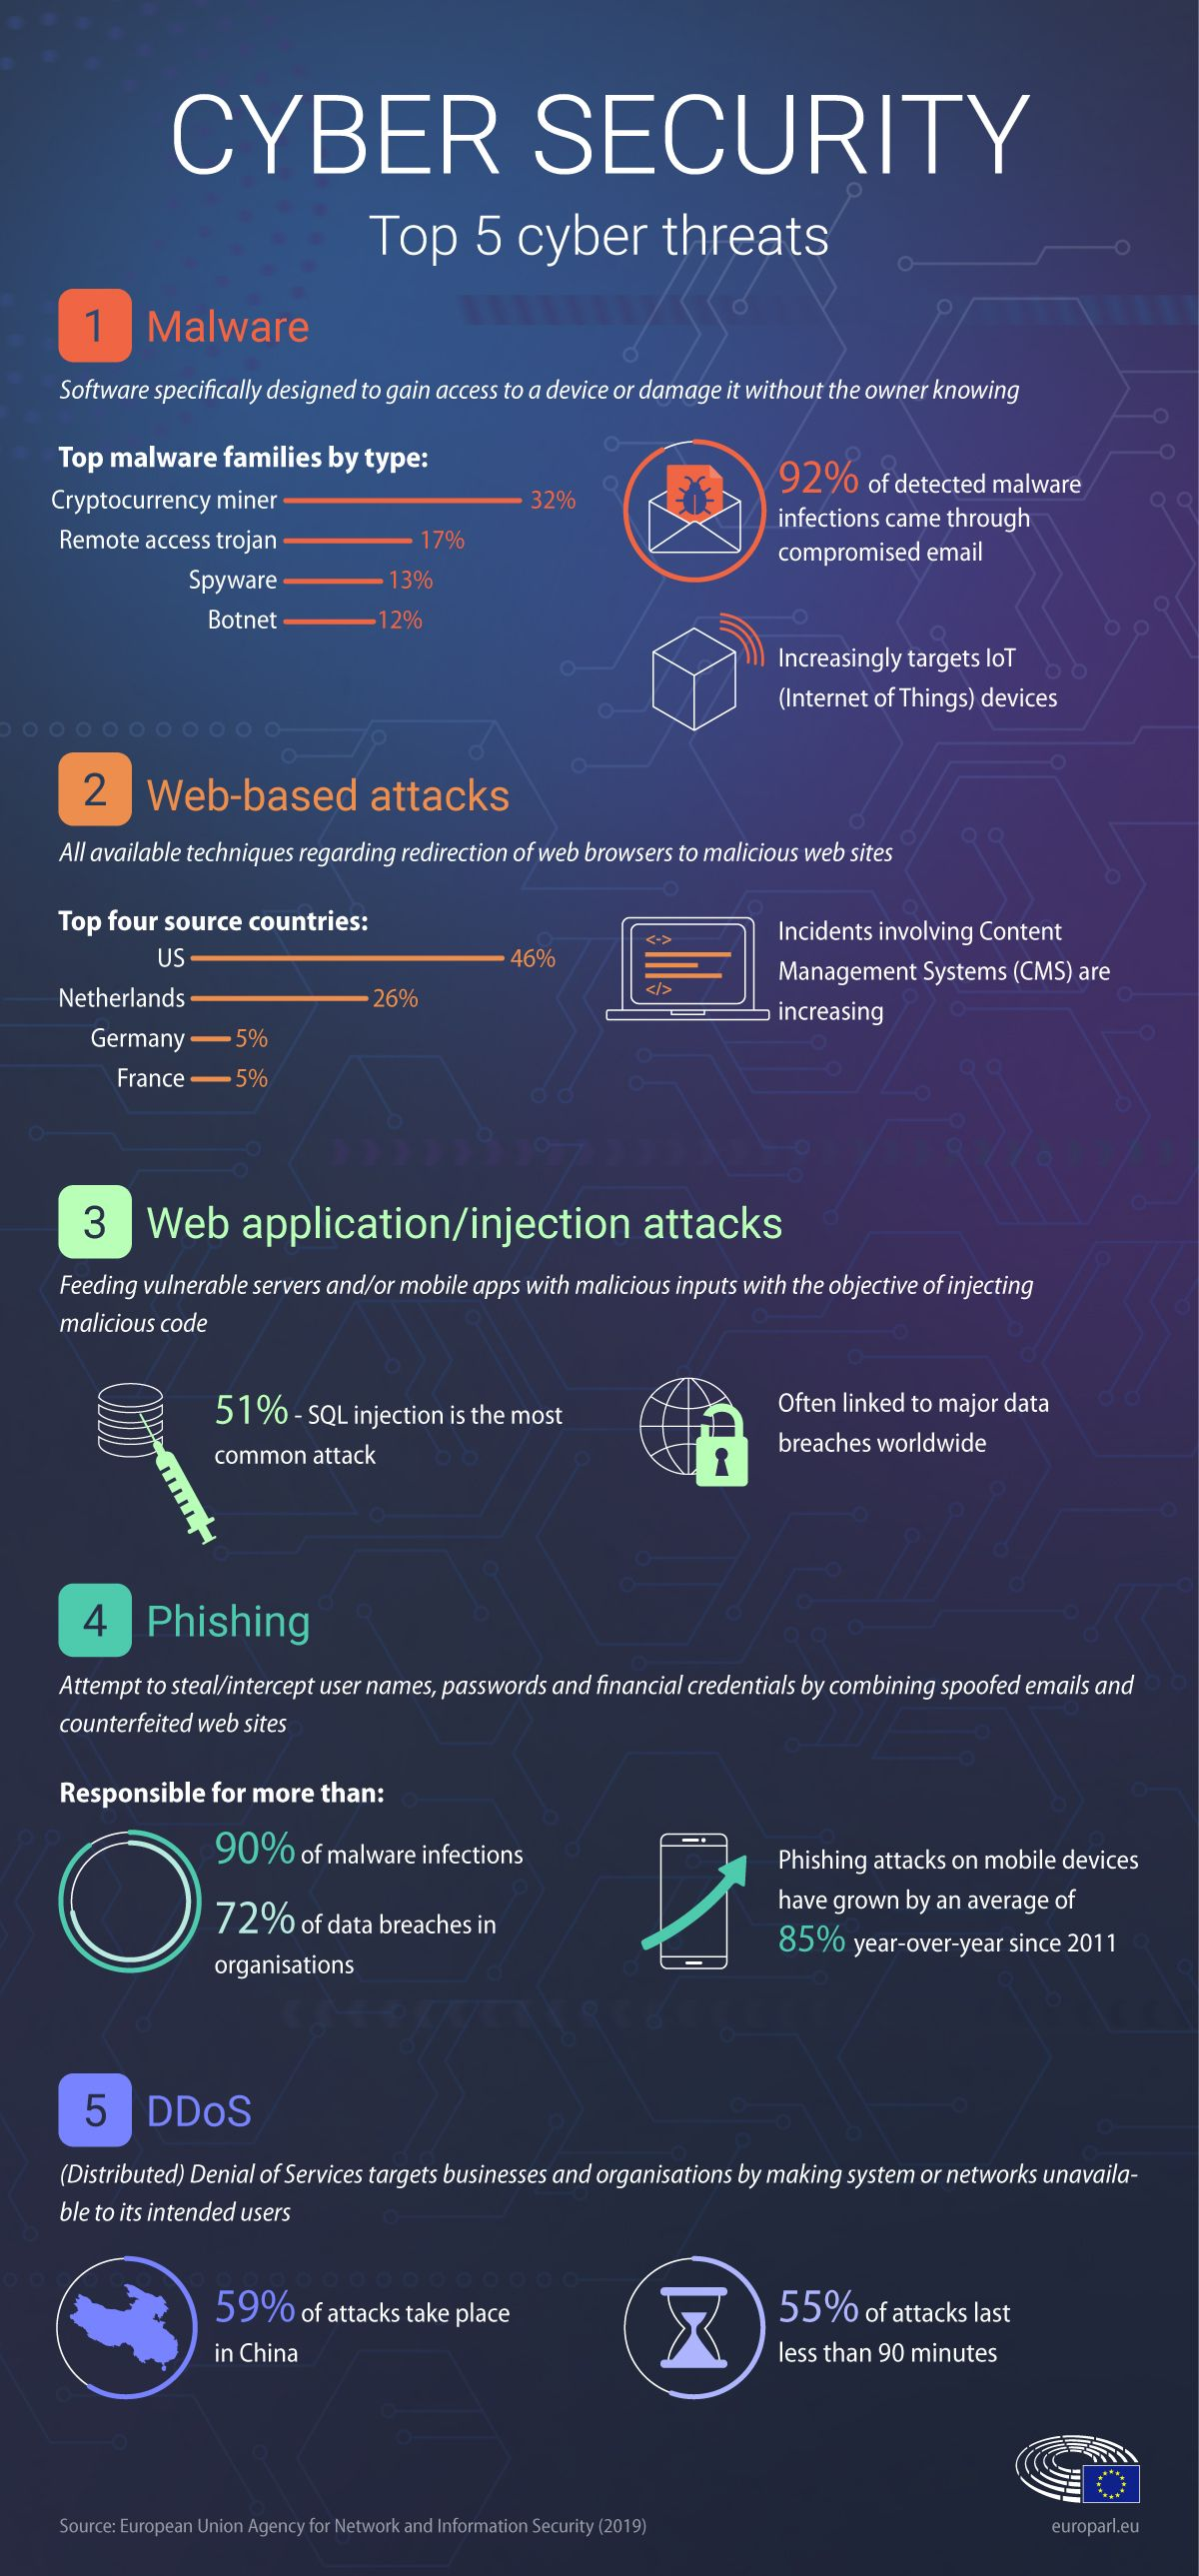 Top 5 Cyber Threats In 2018 According To The Eu S Agency For Network And Information Security In 2020 Cybersecurity Infographic Cyber Threat Cyber Security Technology